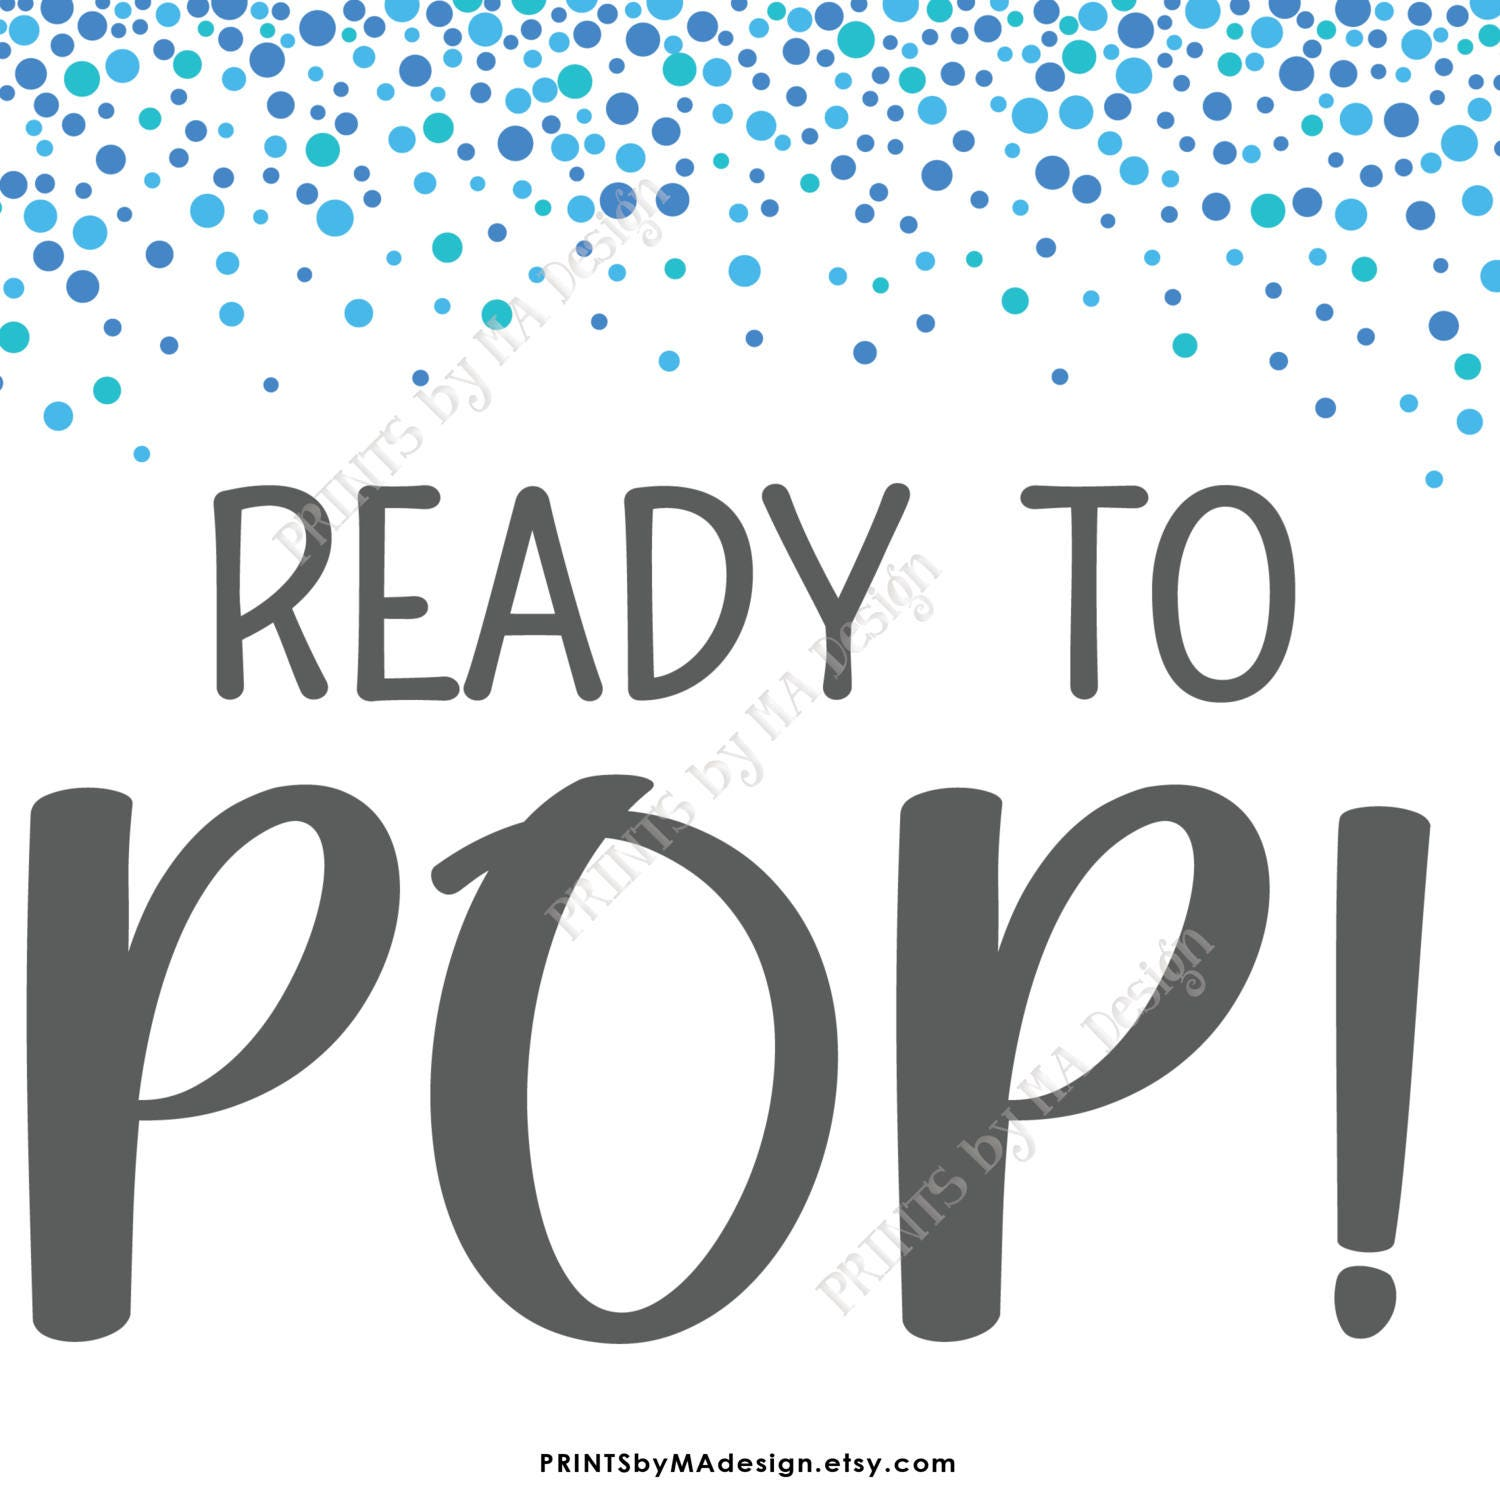 Ready to pop baby shower sign popcorn cake pop blue confetti design baby shower decor it39s a for Ready to pop images